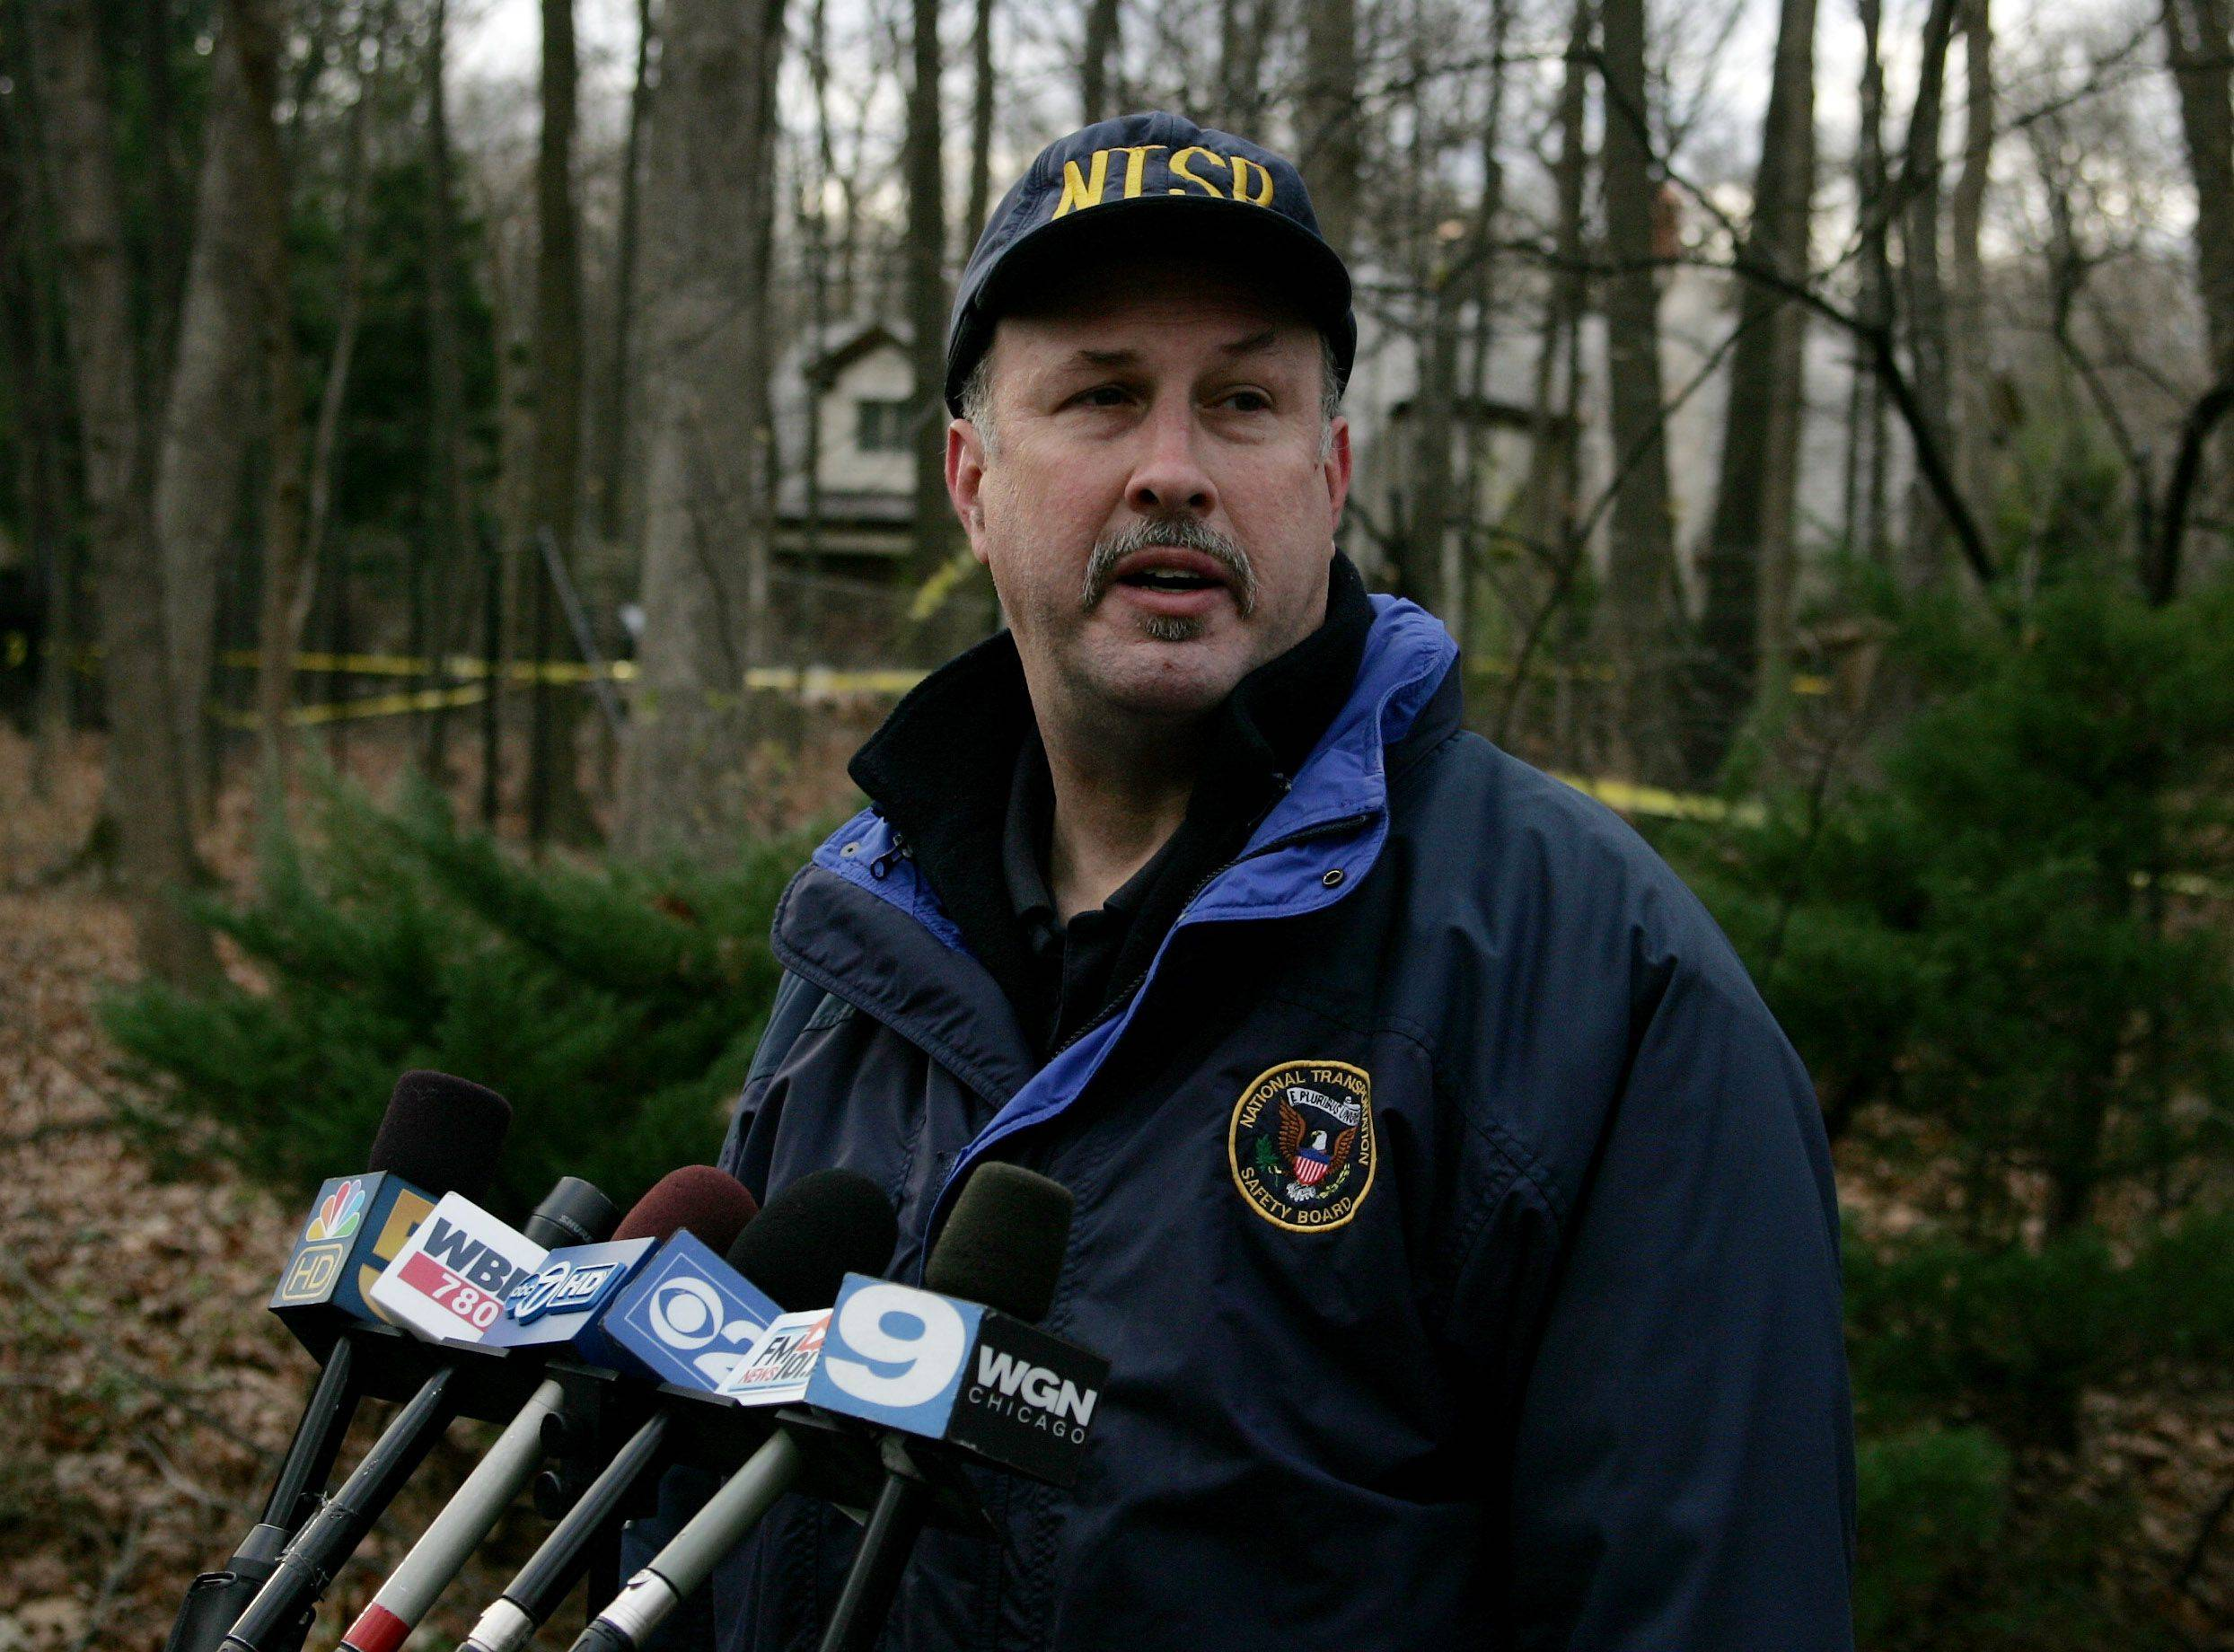 NTSB investigator Ed Malinowski talks Tuesday about the fatal plane crash in Riverwoods.